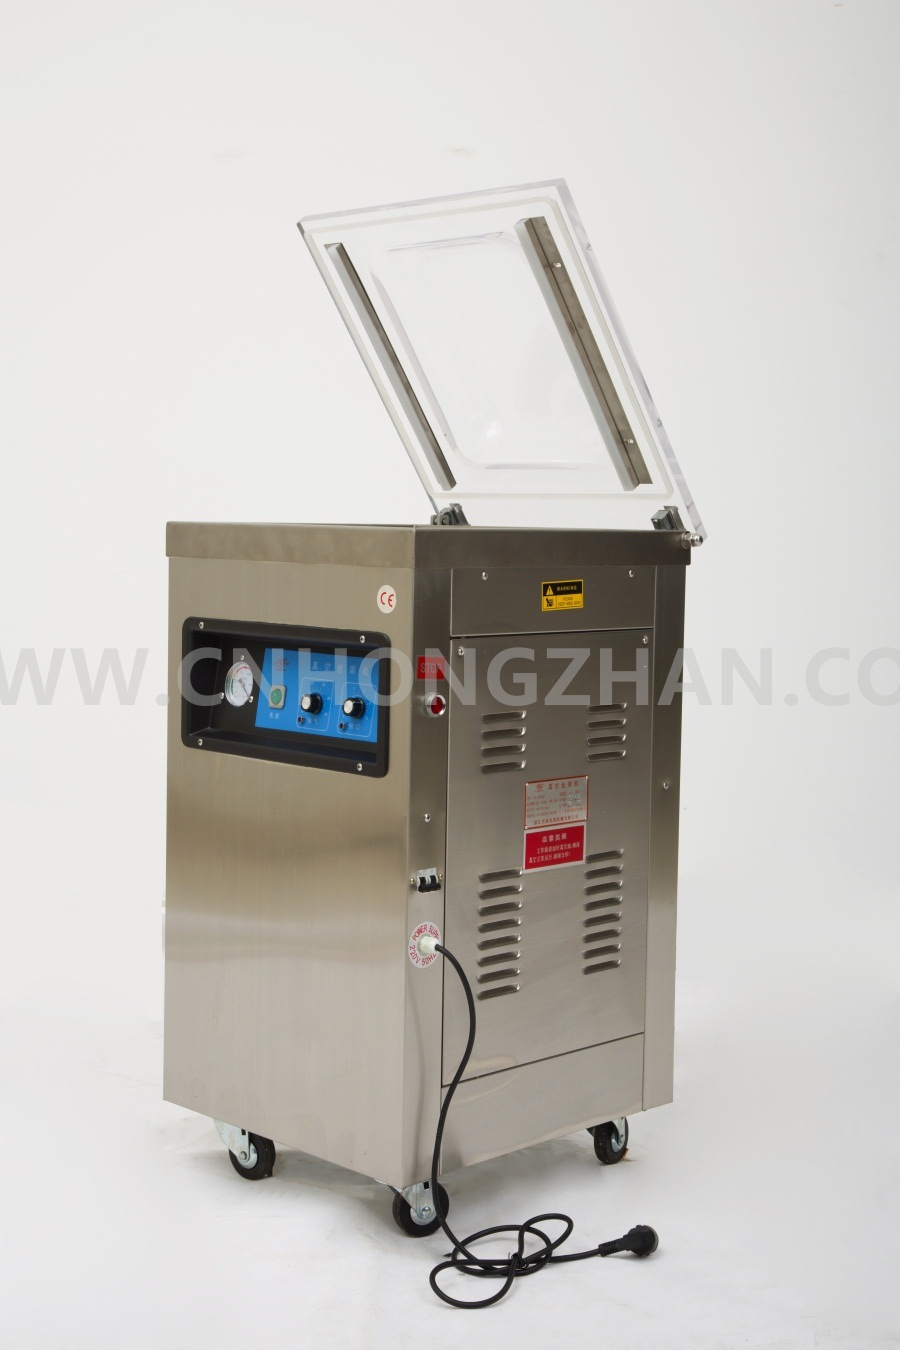 Hongzhan Dz4002D Stand Operate Vacuum Packing Machine